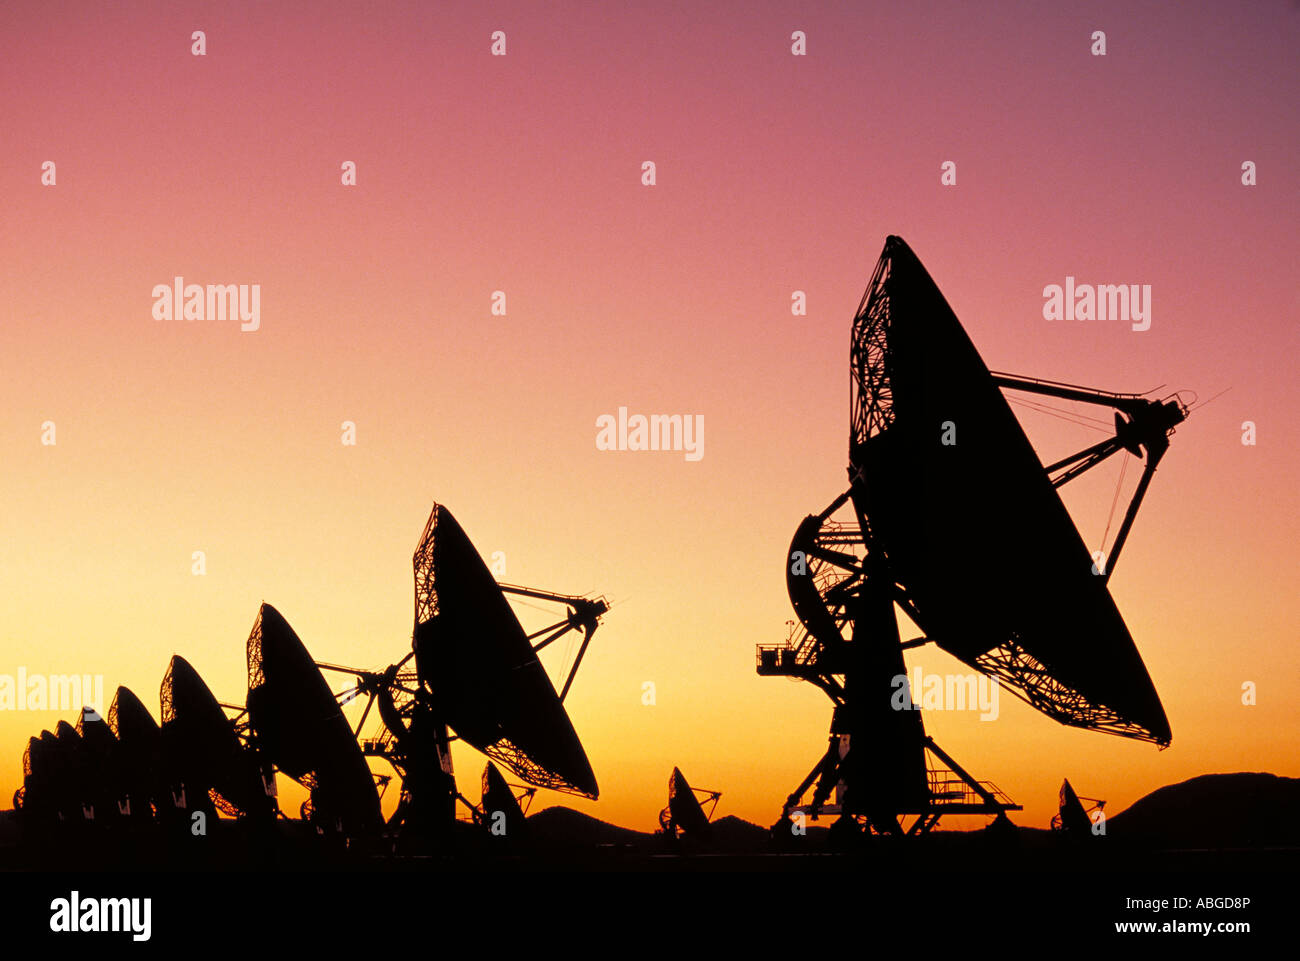 Elk226 5369 New Mexico NRAO Very Large Array VLA largest radio telescope in the world - Stock Image